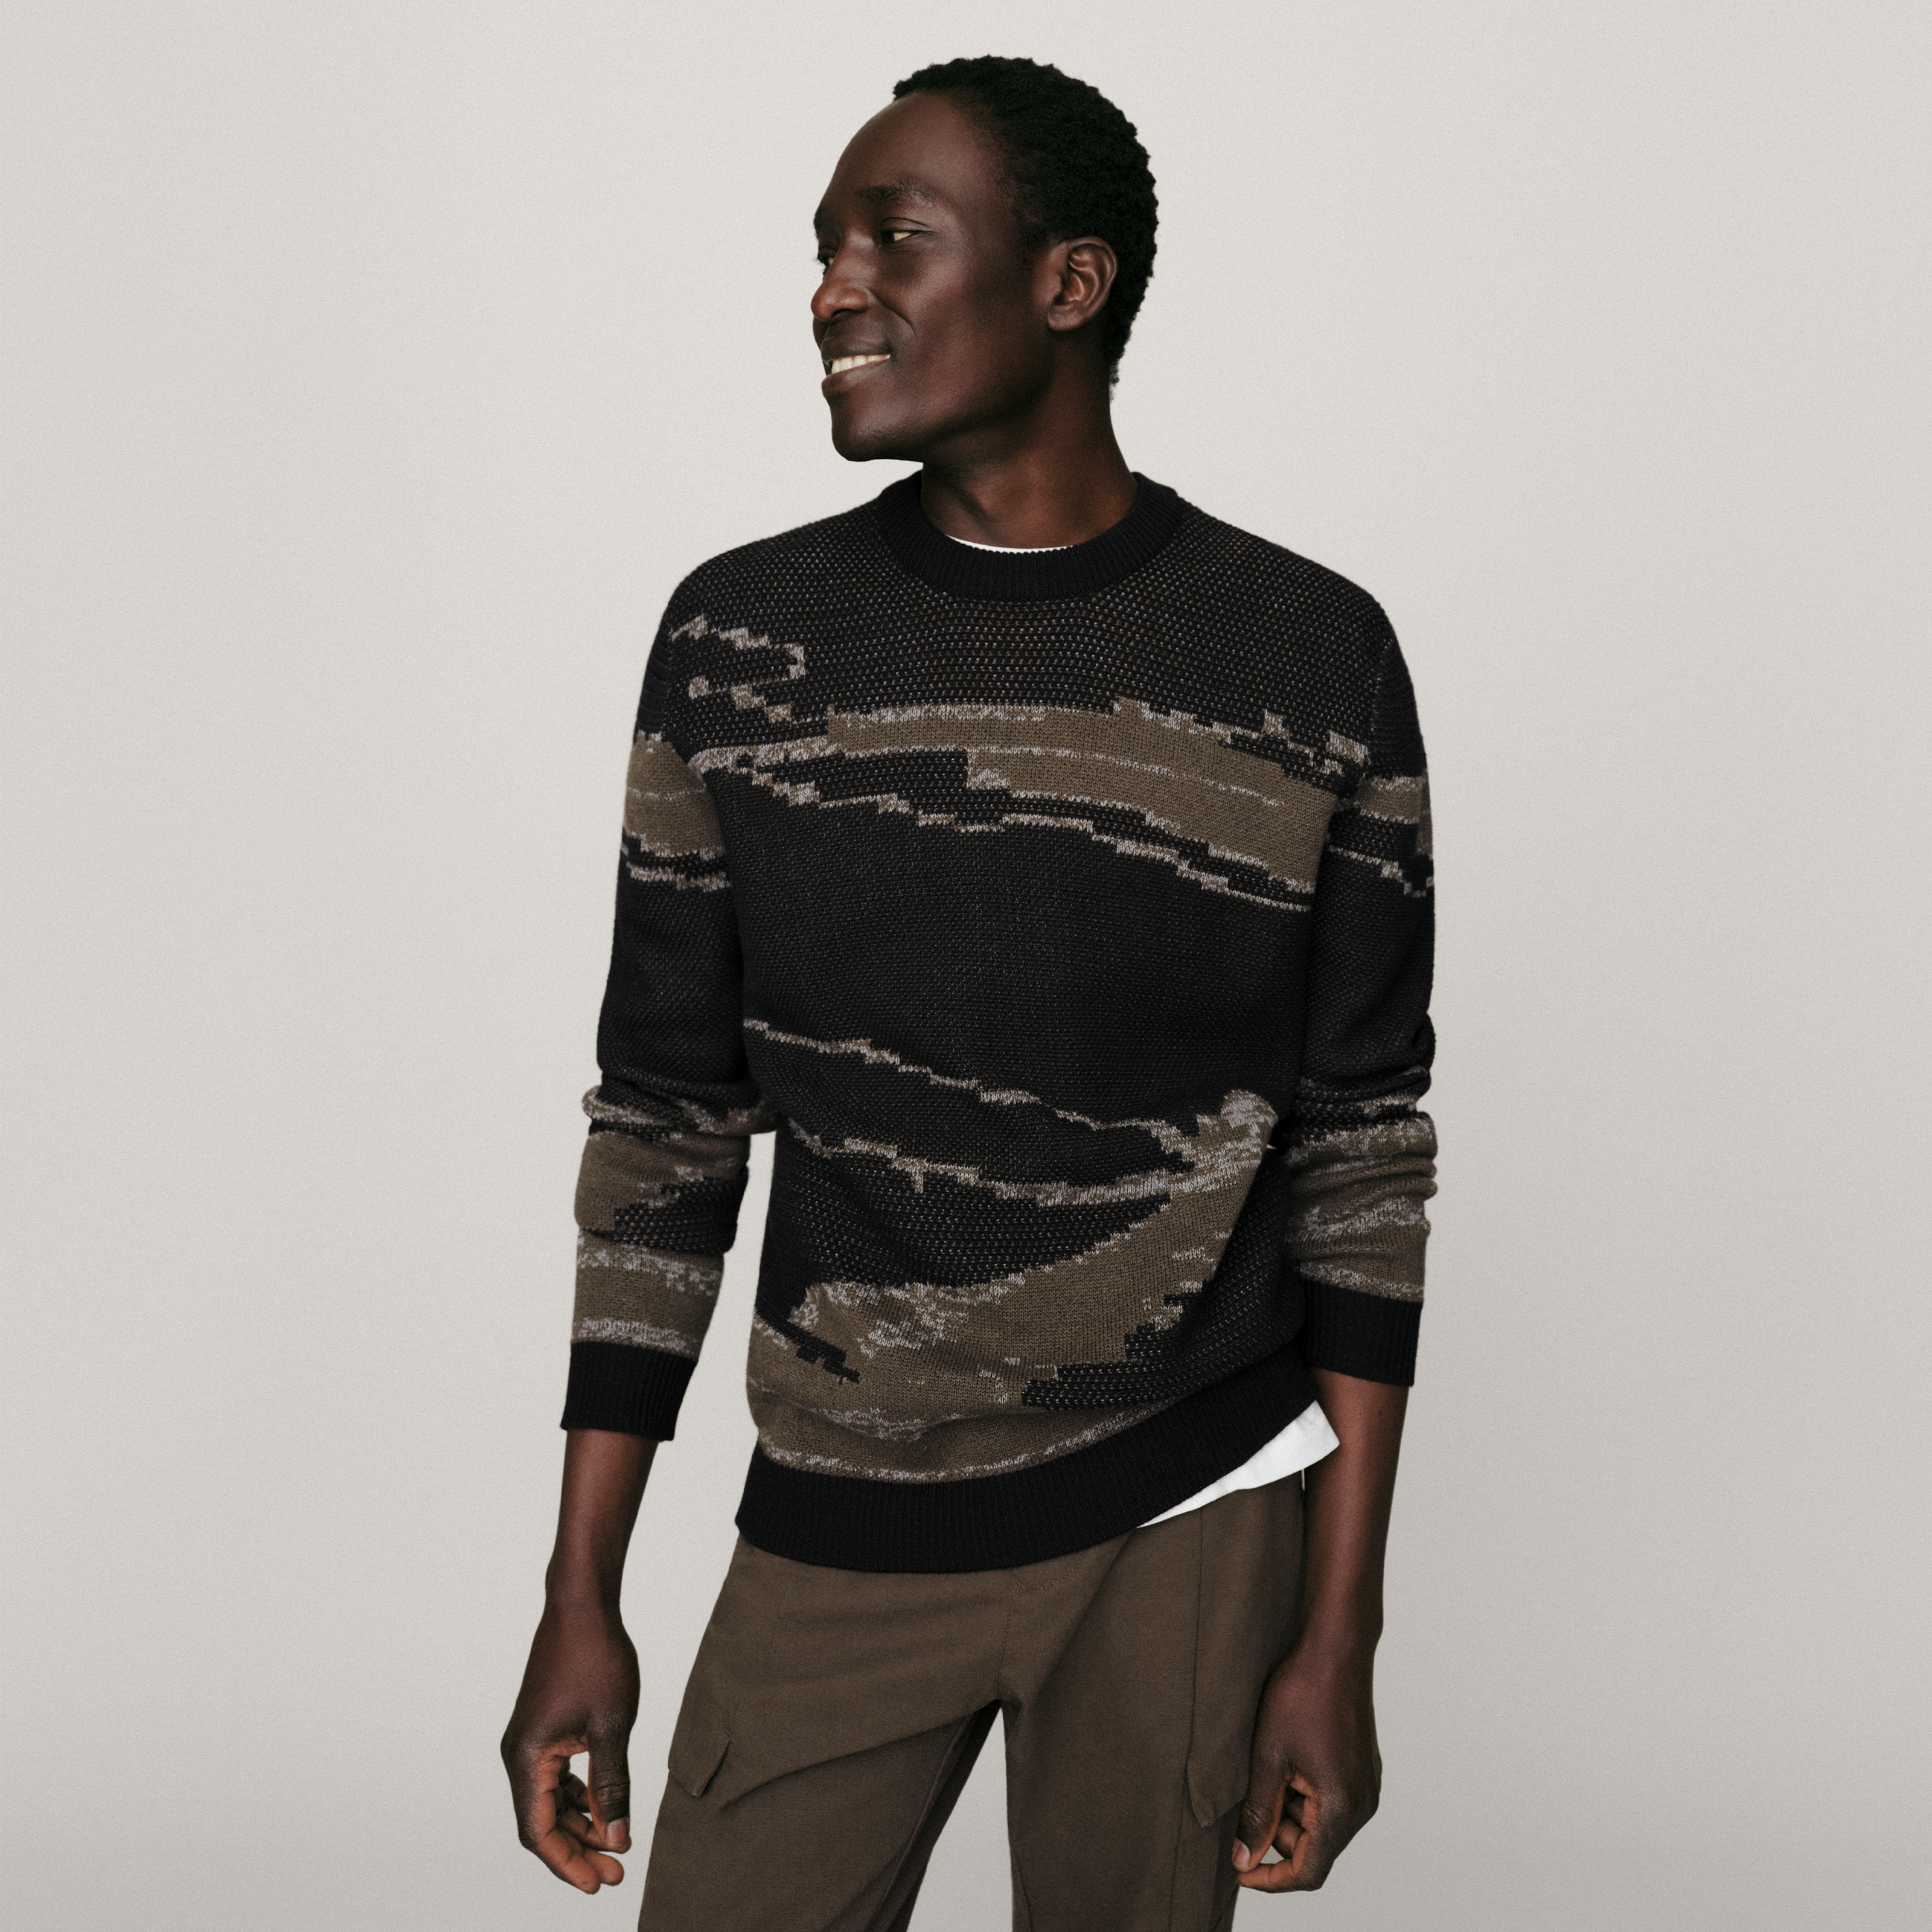 382021- men - startpage- square -structured knit - IMG